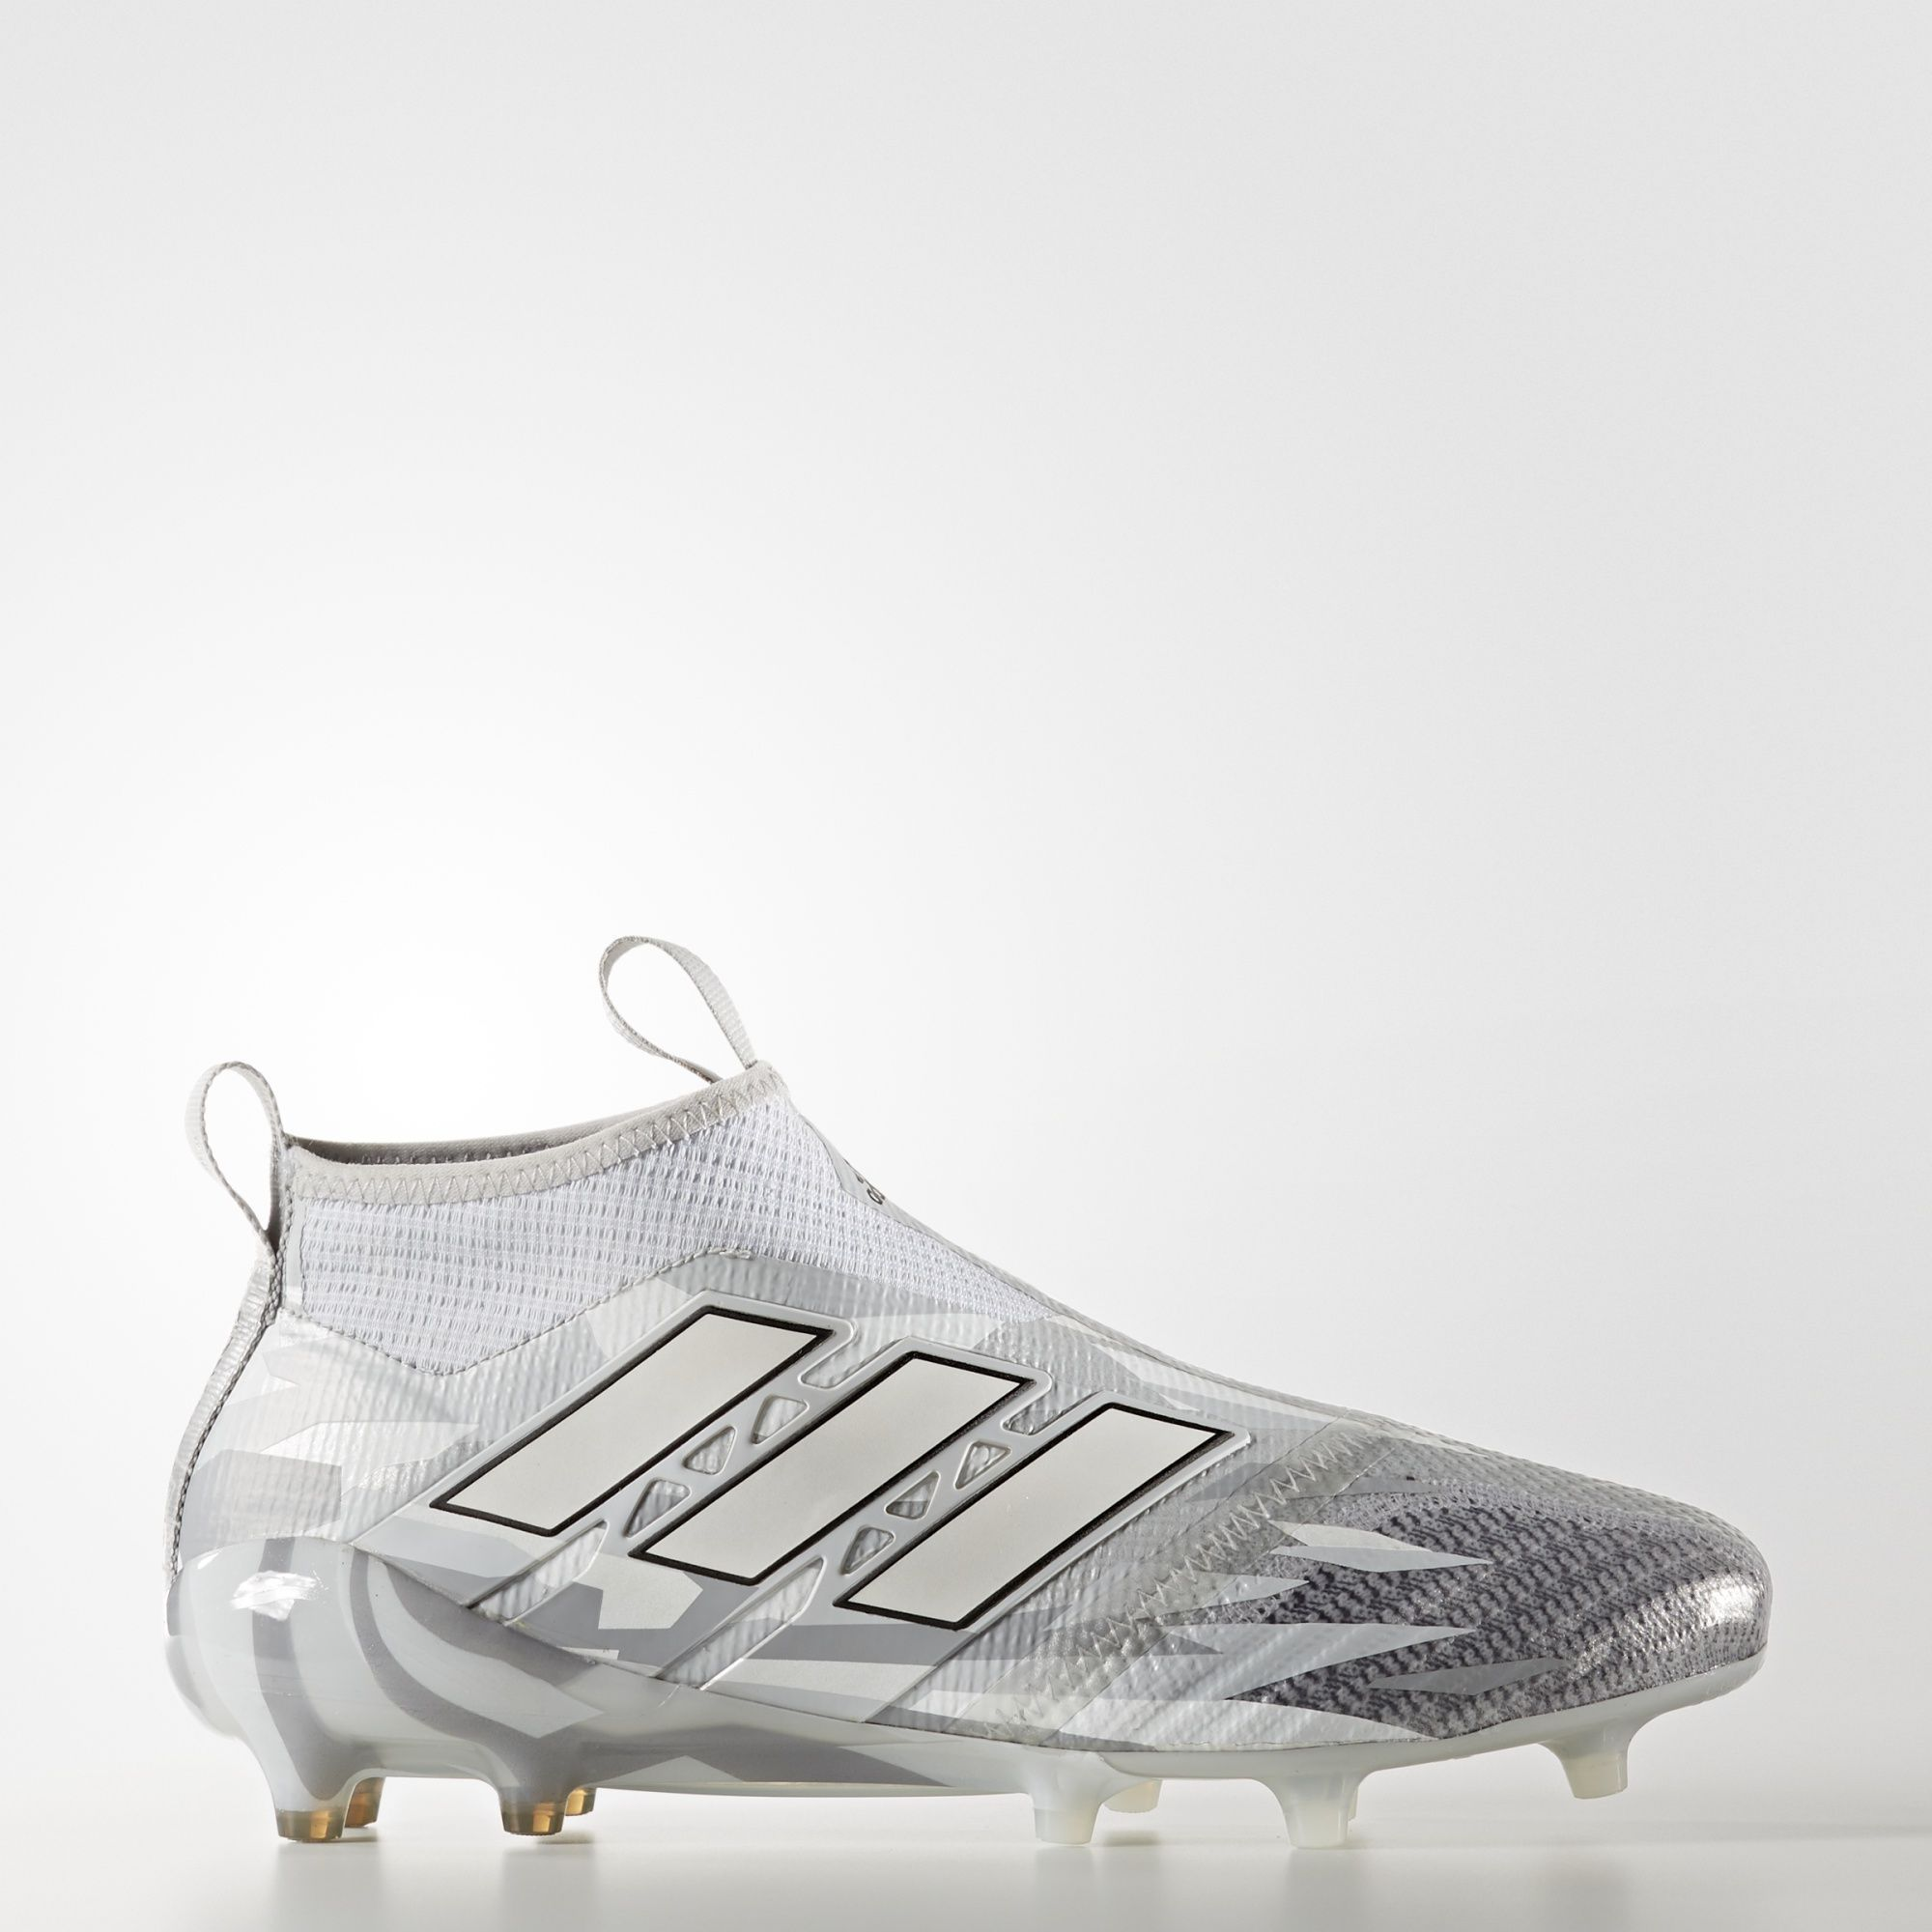 adidas - ACE 17+ Purecontrol Firm Ground Cleats Clear Grey / Running White  Ftw /